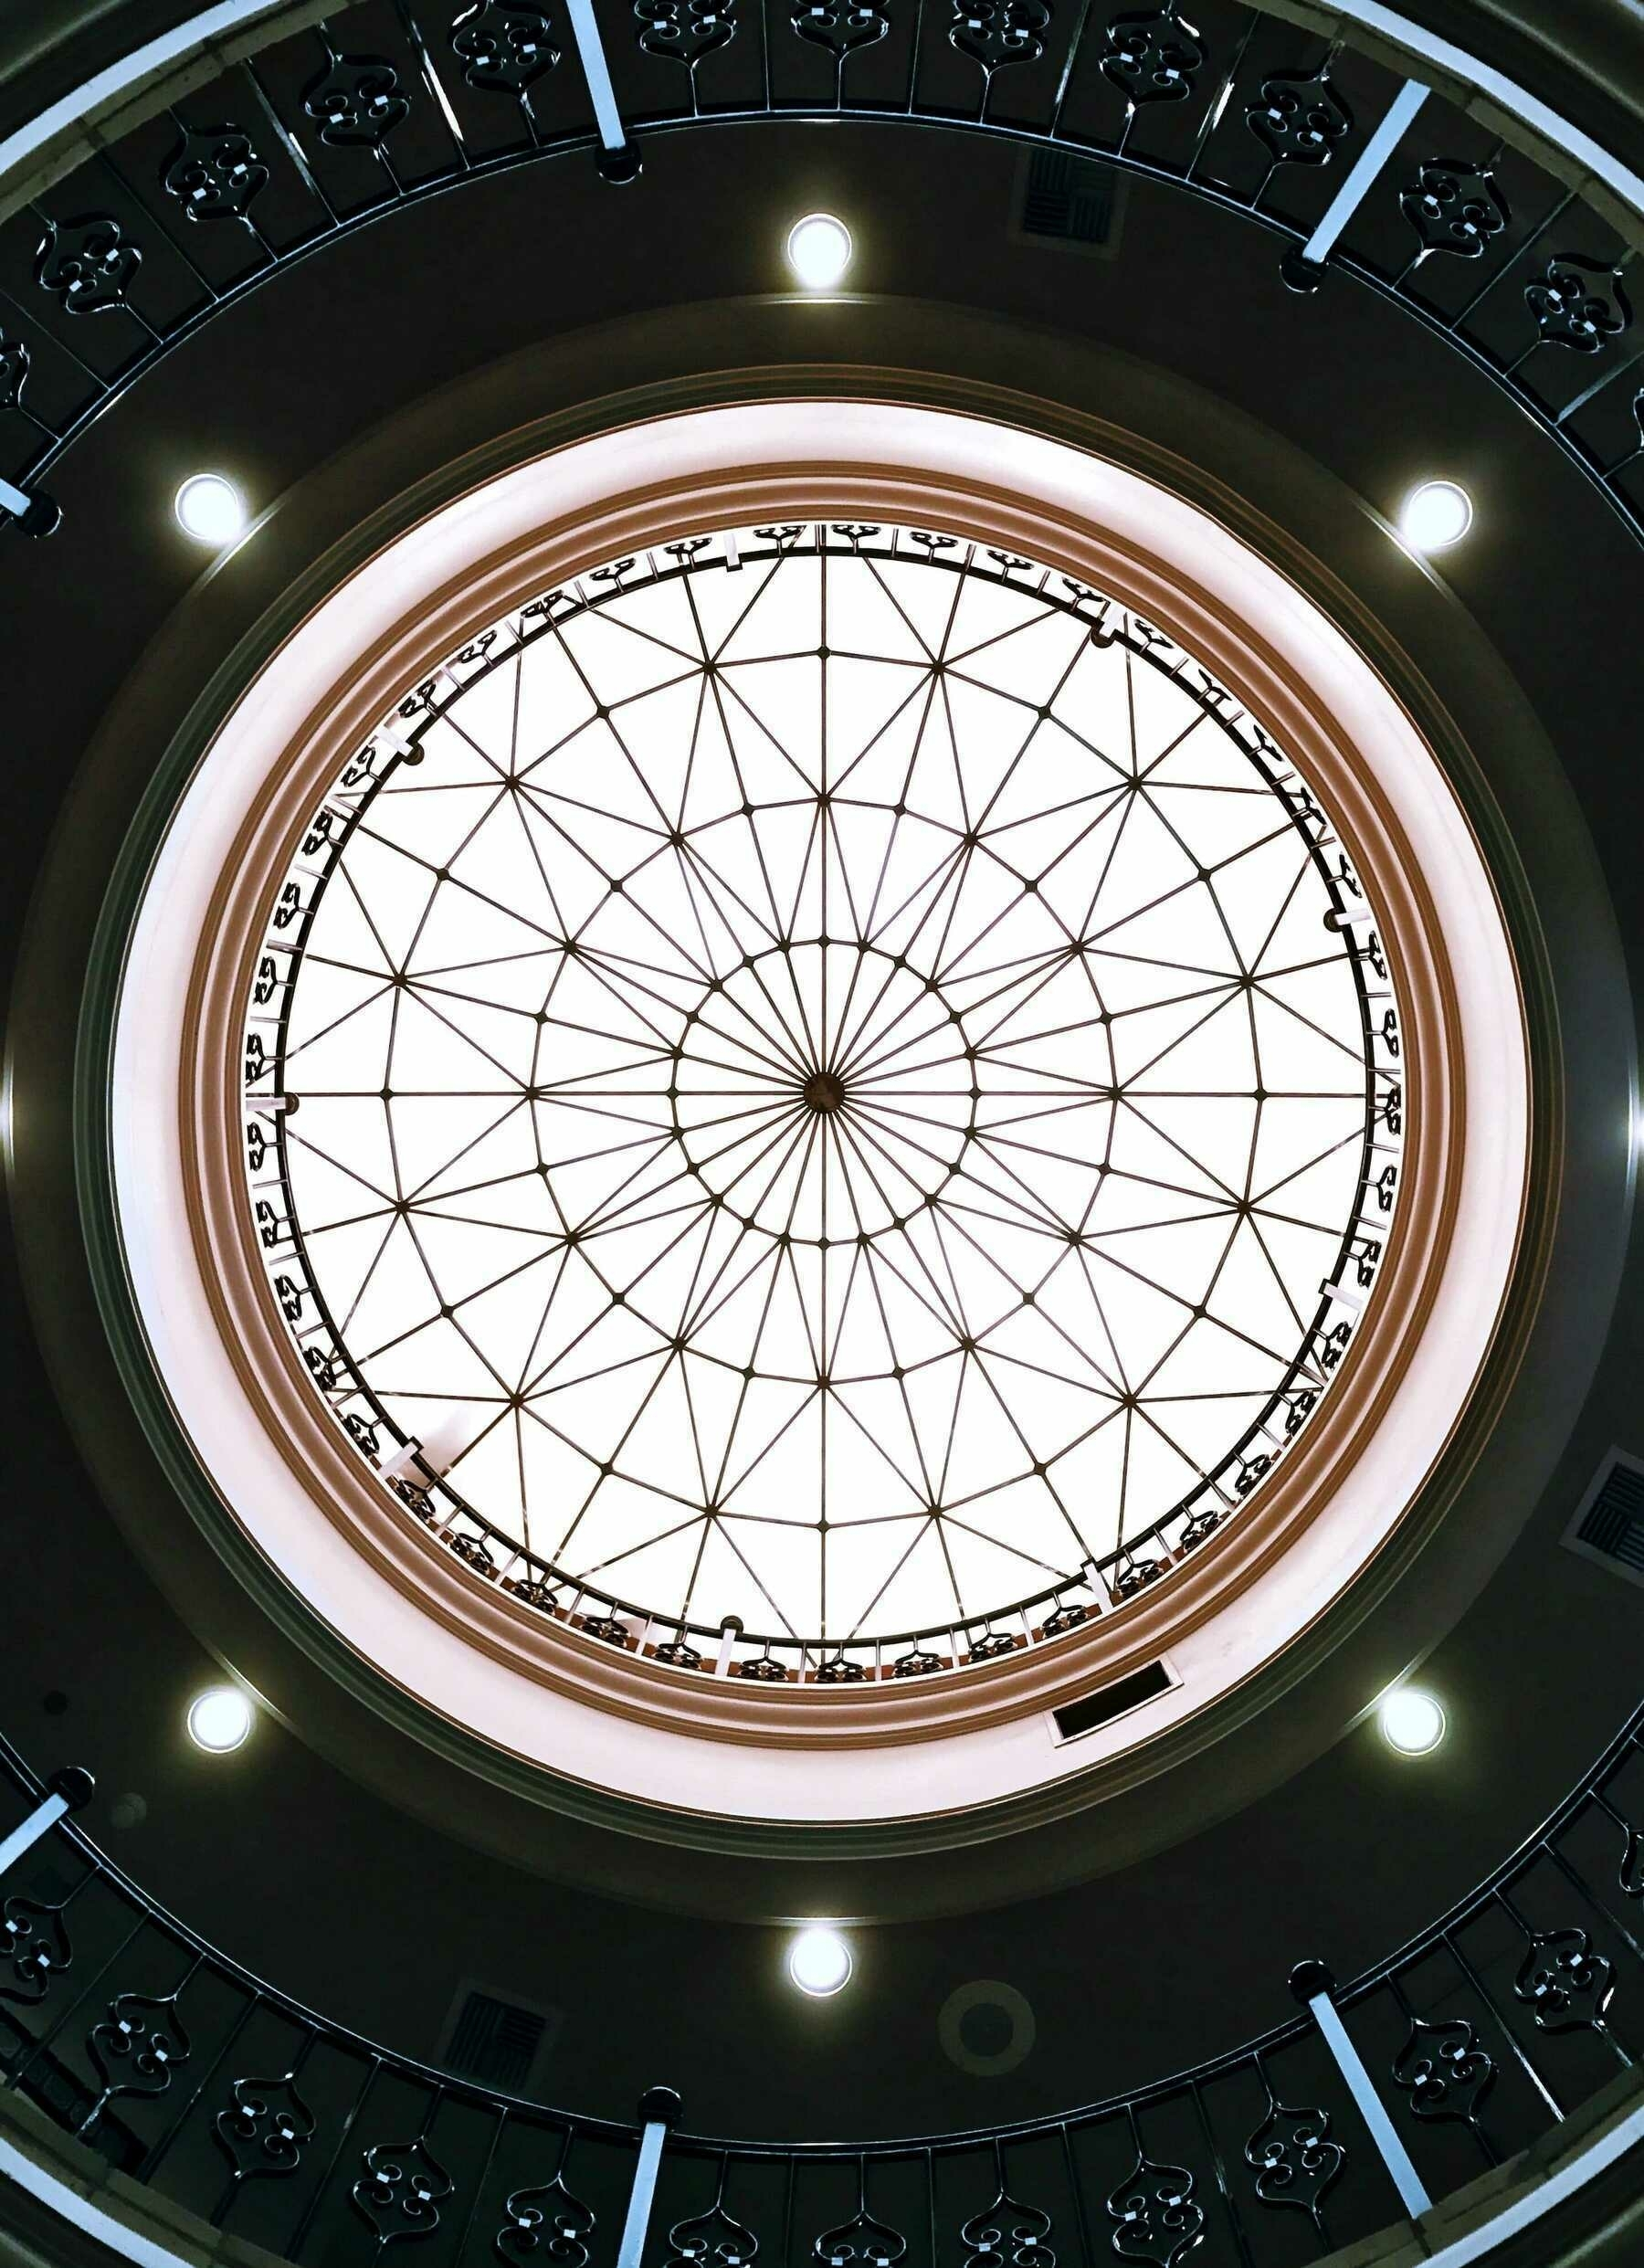 A picture of an ornate skylight at the Santa Ana train station.